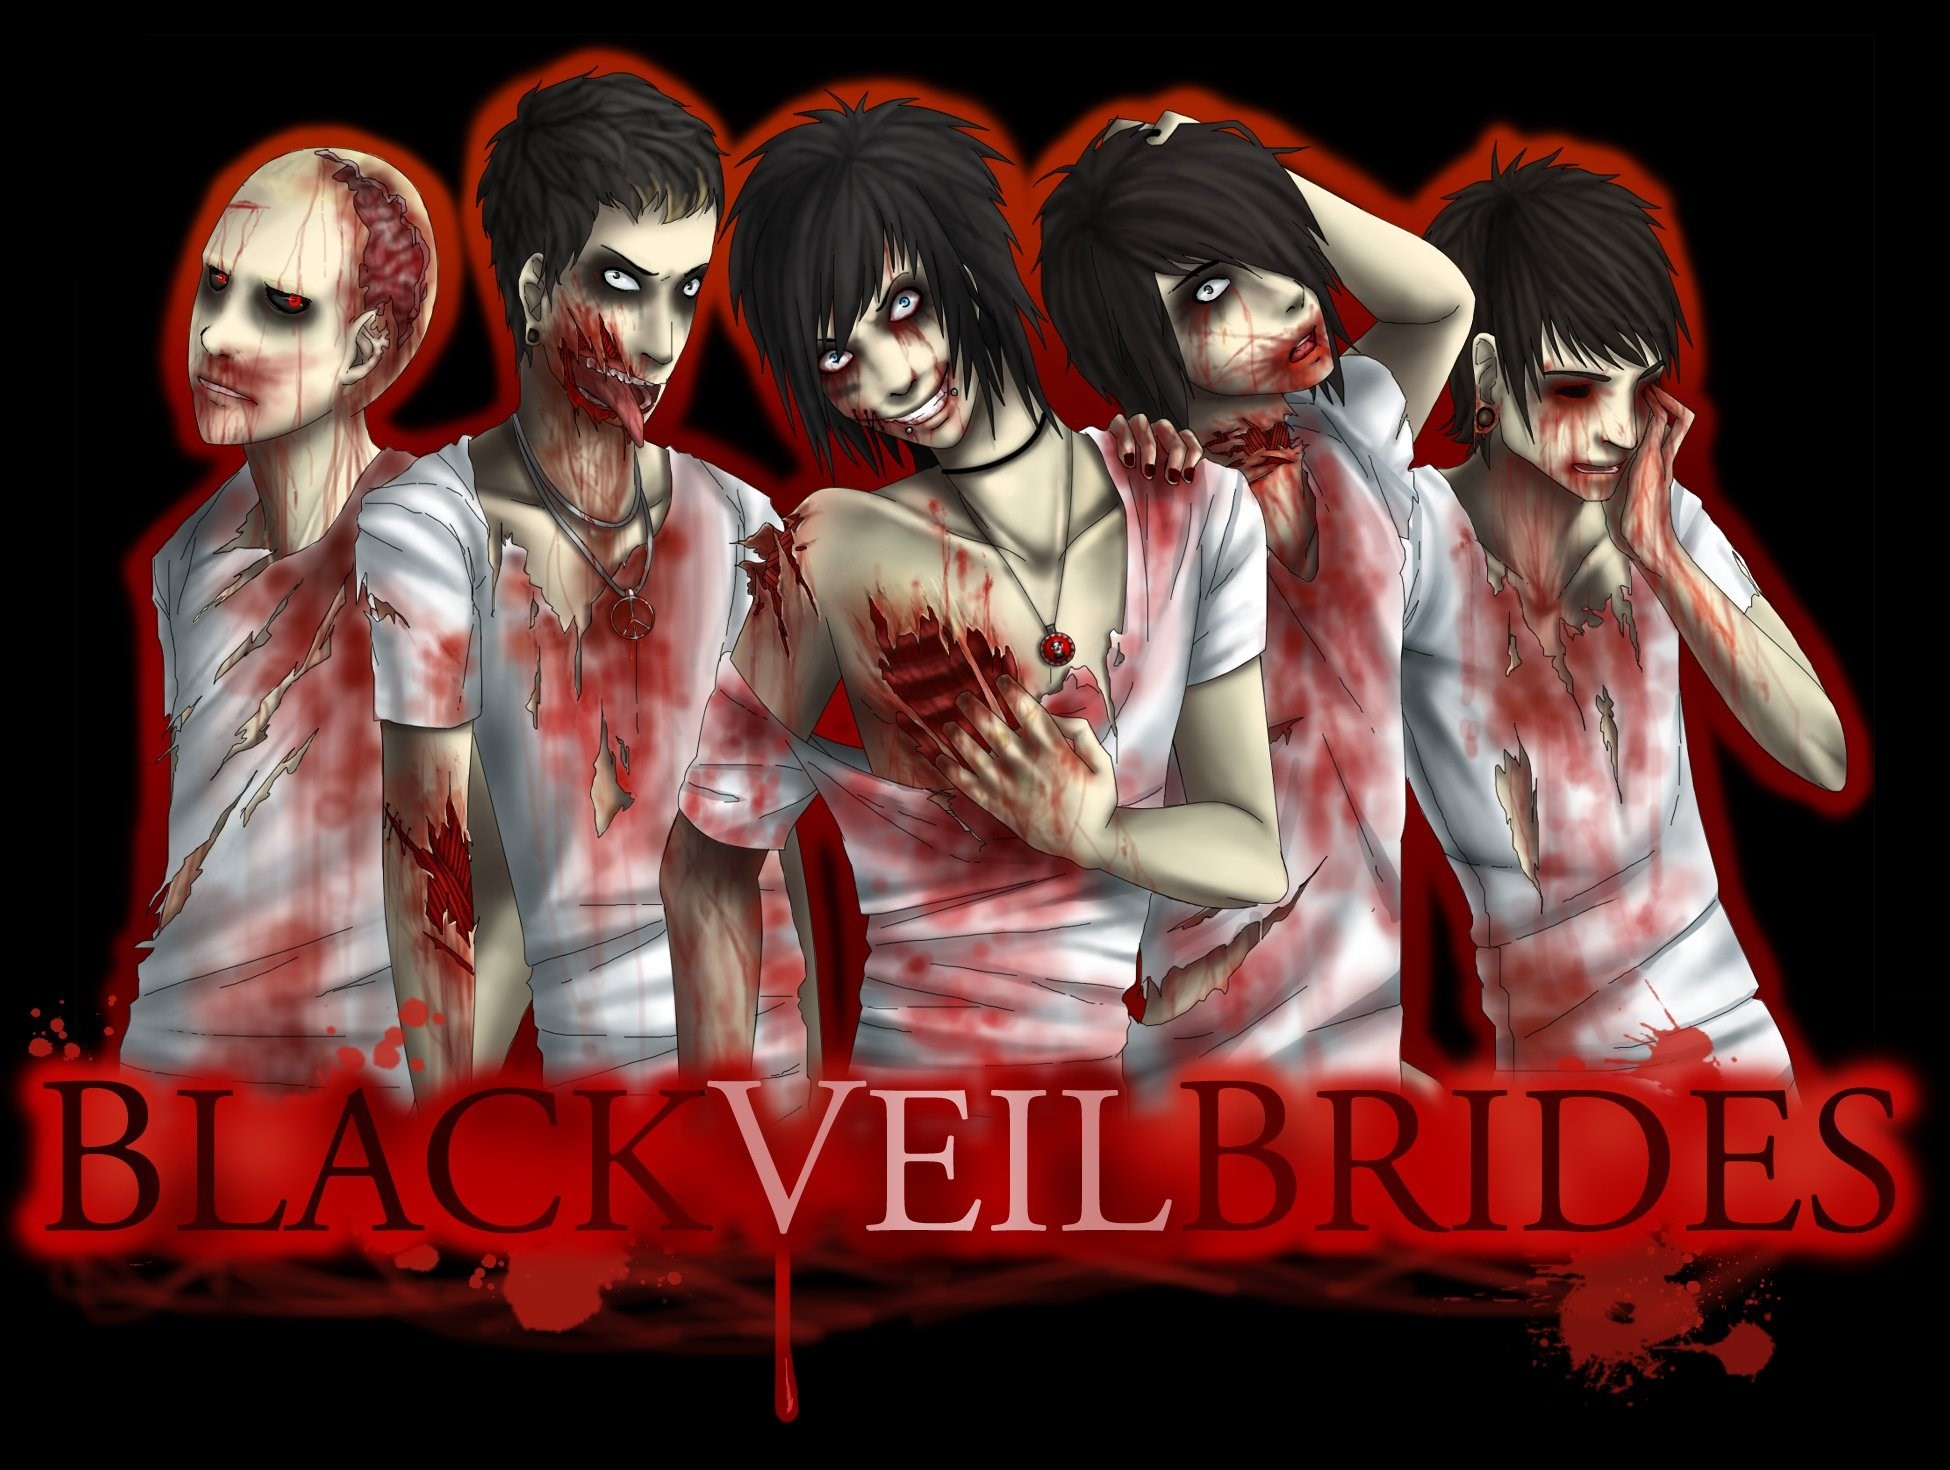 Pink Floyd Quotes Wallpaper Black Veil Brides Background 64 Images